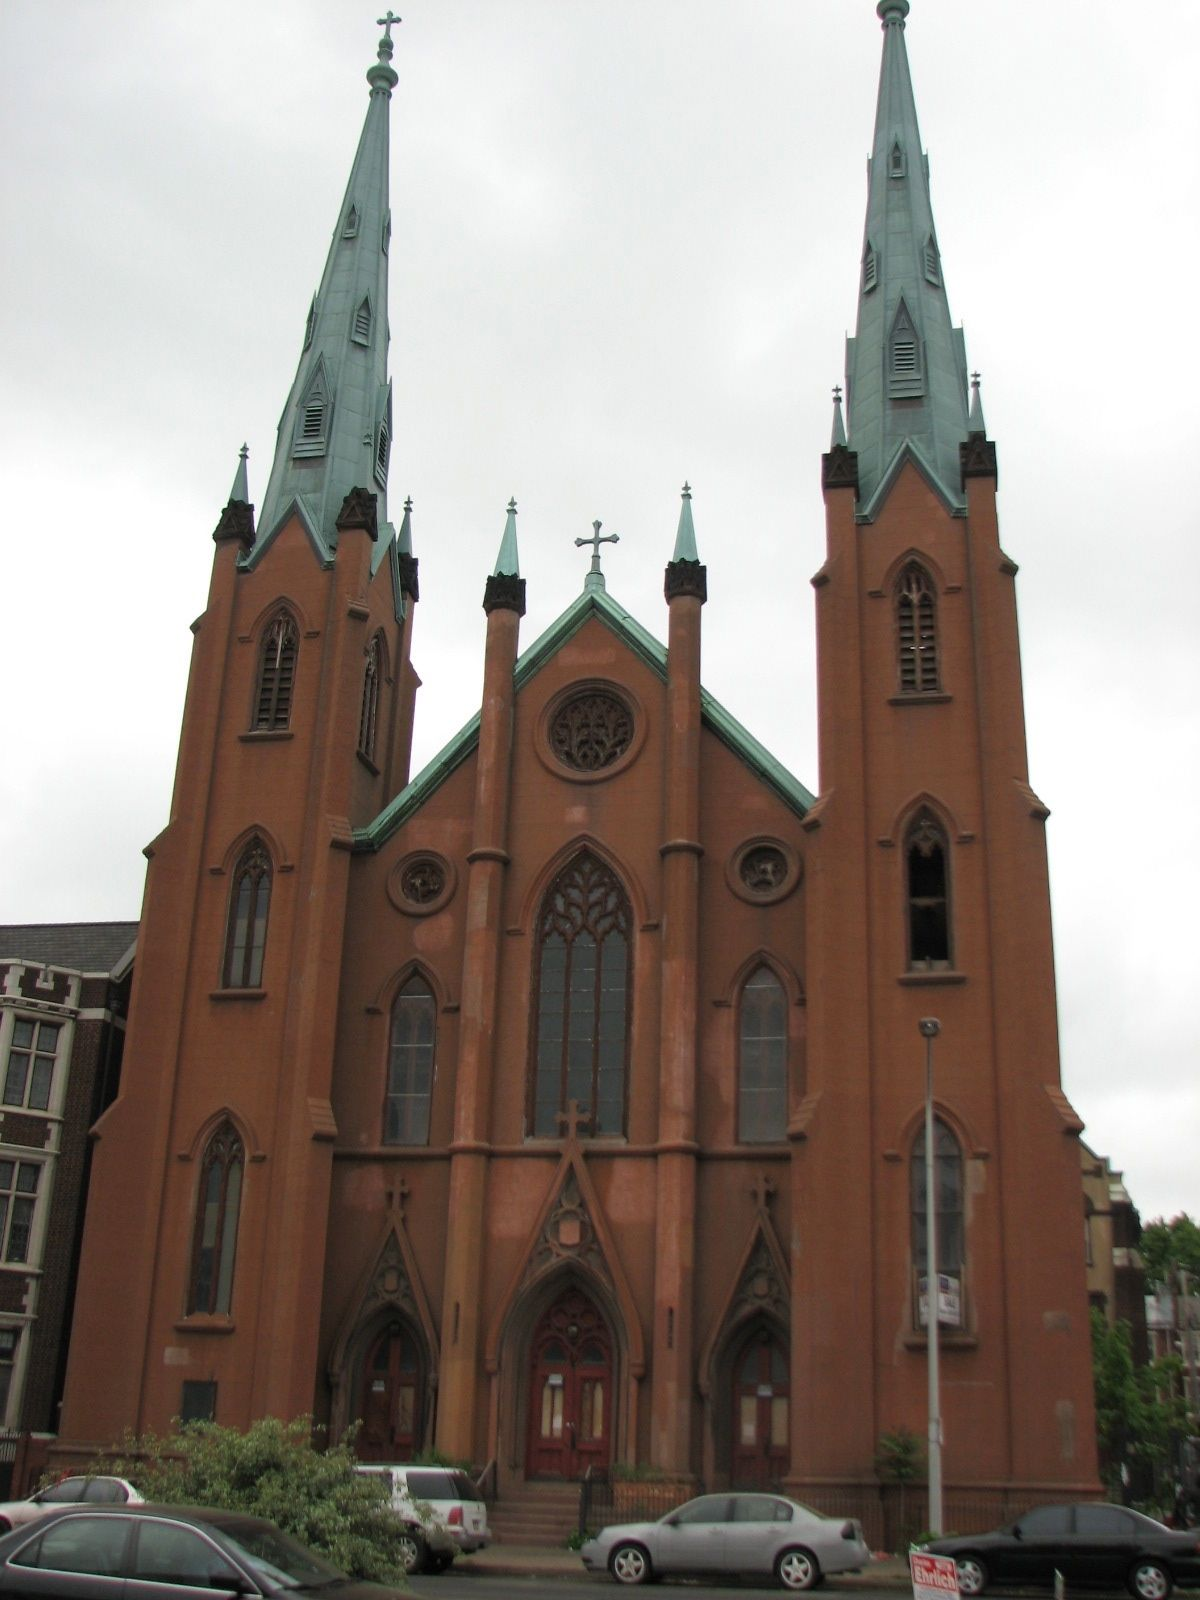 The Church of the Assumption, 1123-33 Spring Garden St., was designated historic by the city in May 2009.